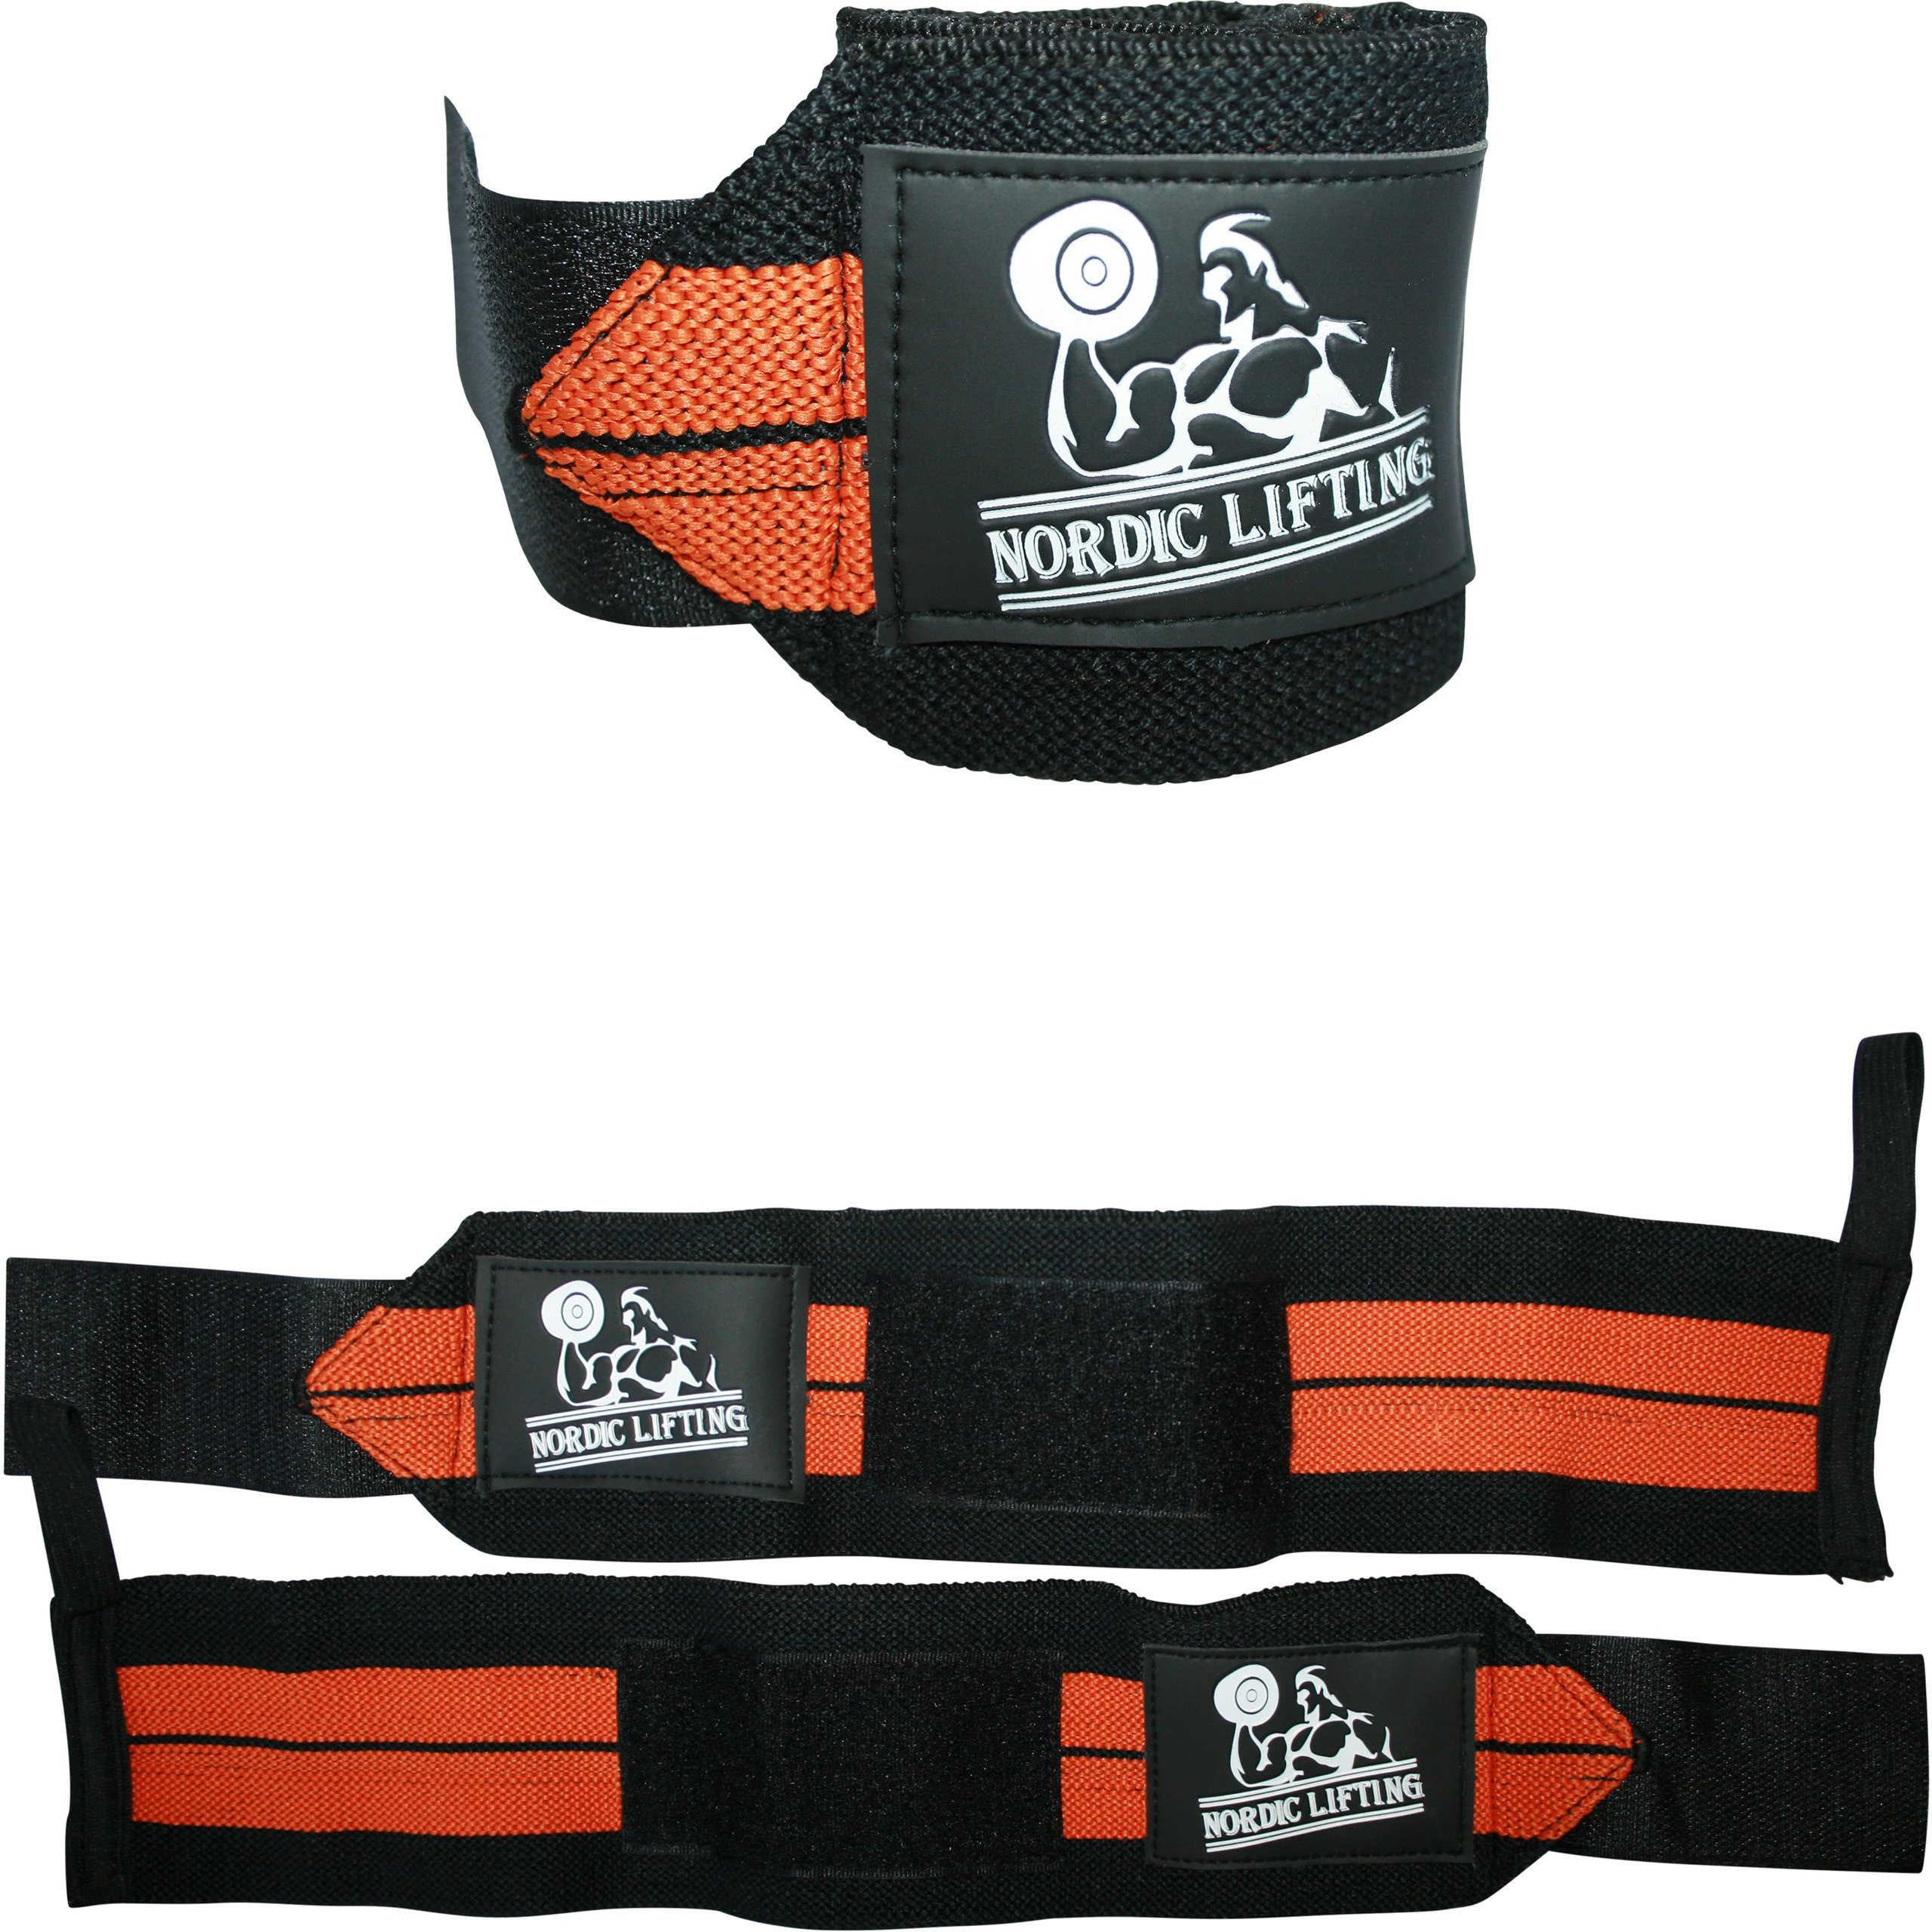 Wrist Wraps (1 Pair/2 Wraps) for Weightlifting/Cross Training/Powerlifting/Bodybuilding-Women & Men-Premium Quality Equipment & Accessories Avoid Injury During Weight Lifting-(Orange)-1 Year Warranty by Nordic Lifting